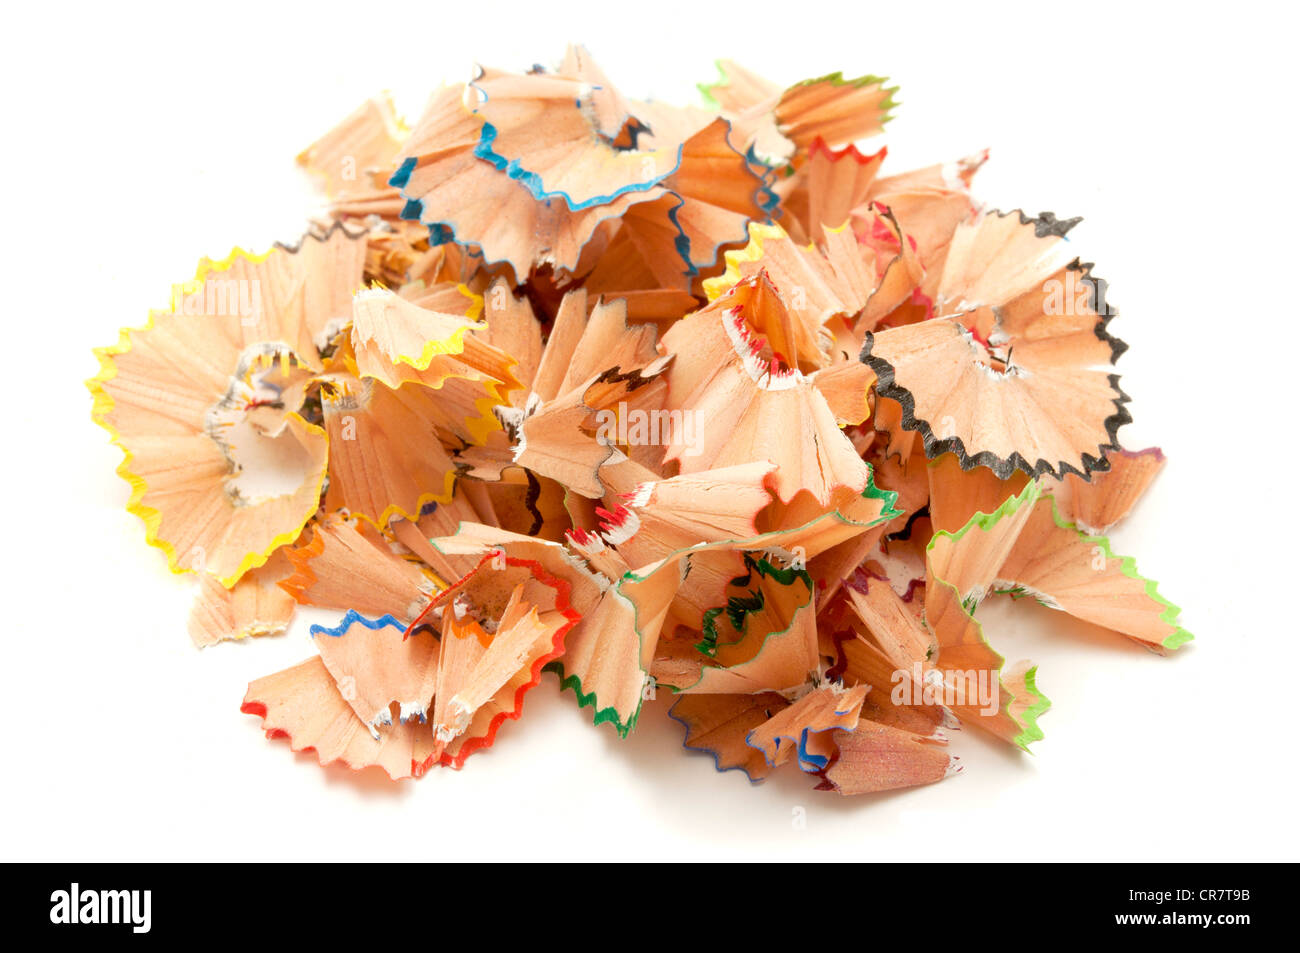 Pencil shavings on a white background - Stock Image